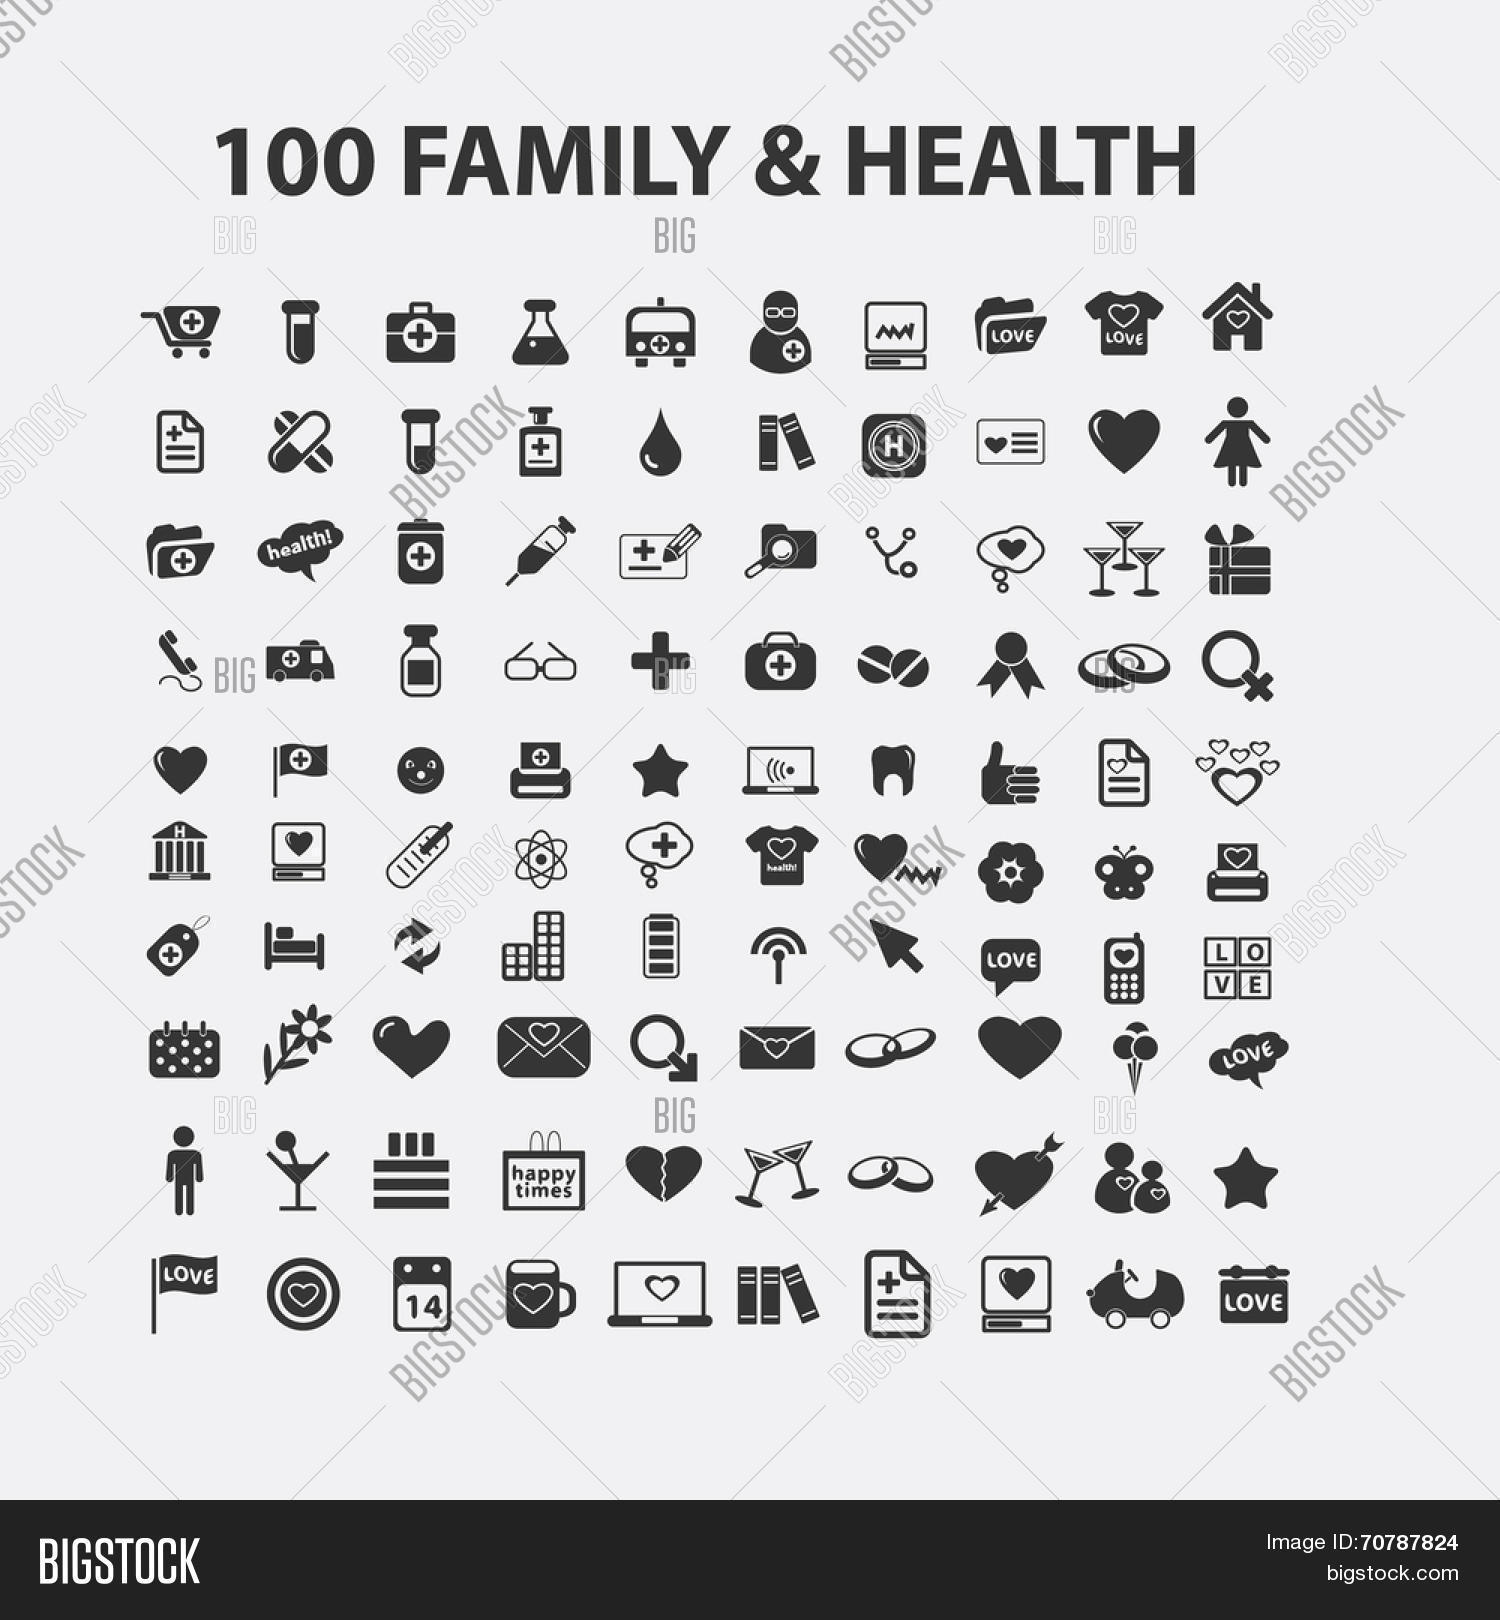 100 family love health isolated vector photo bigstock 100 family love health isolated icons signs symbols illustrations silhouettes create a lightbox buycottarizona